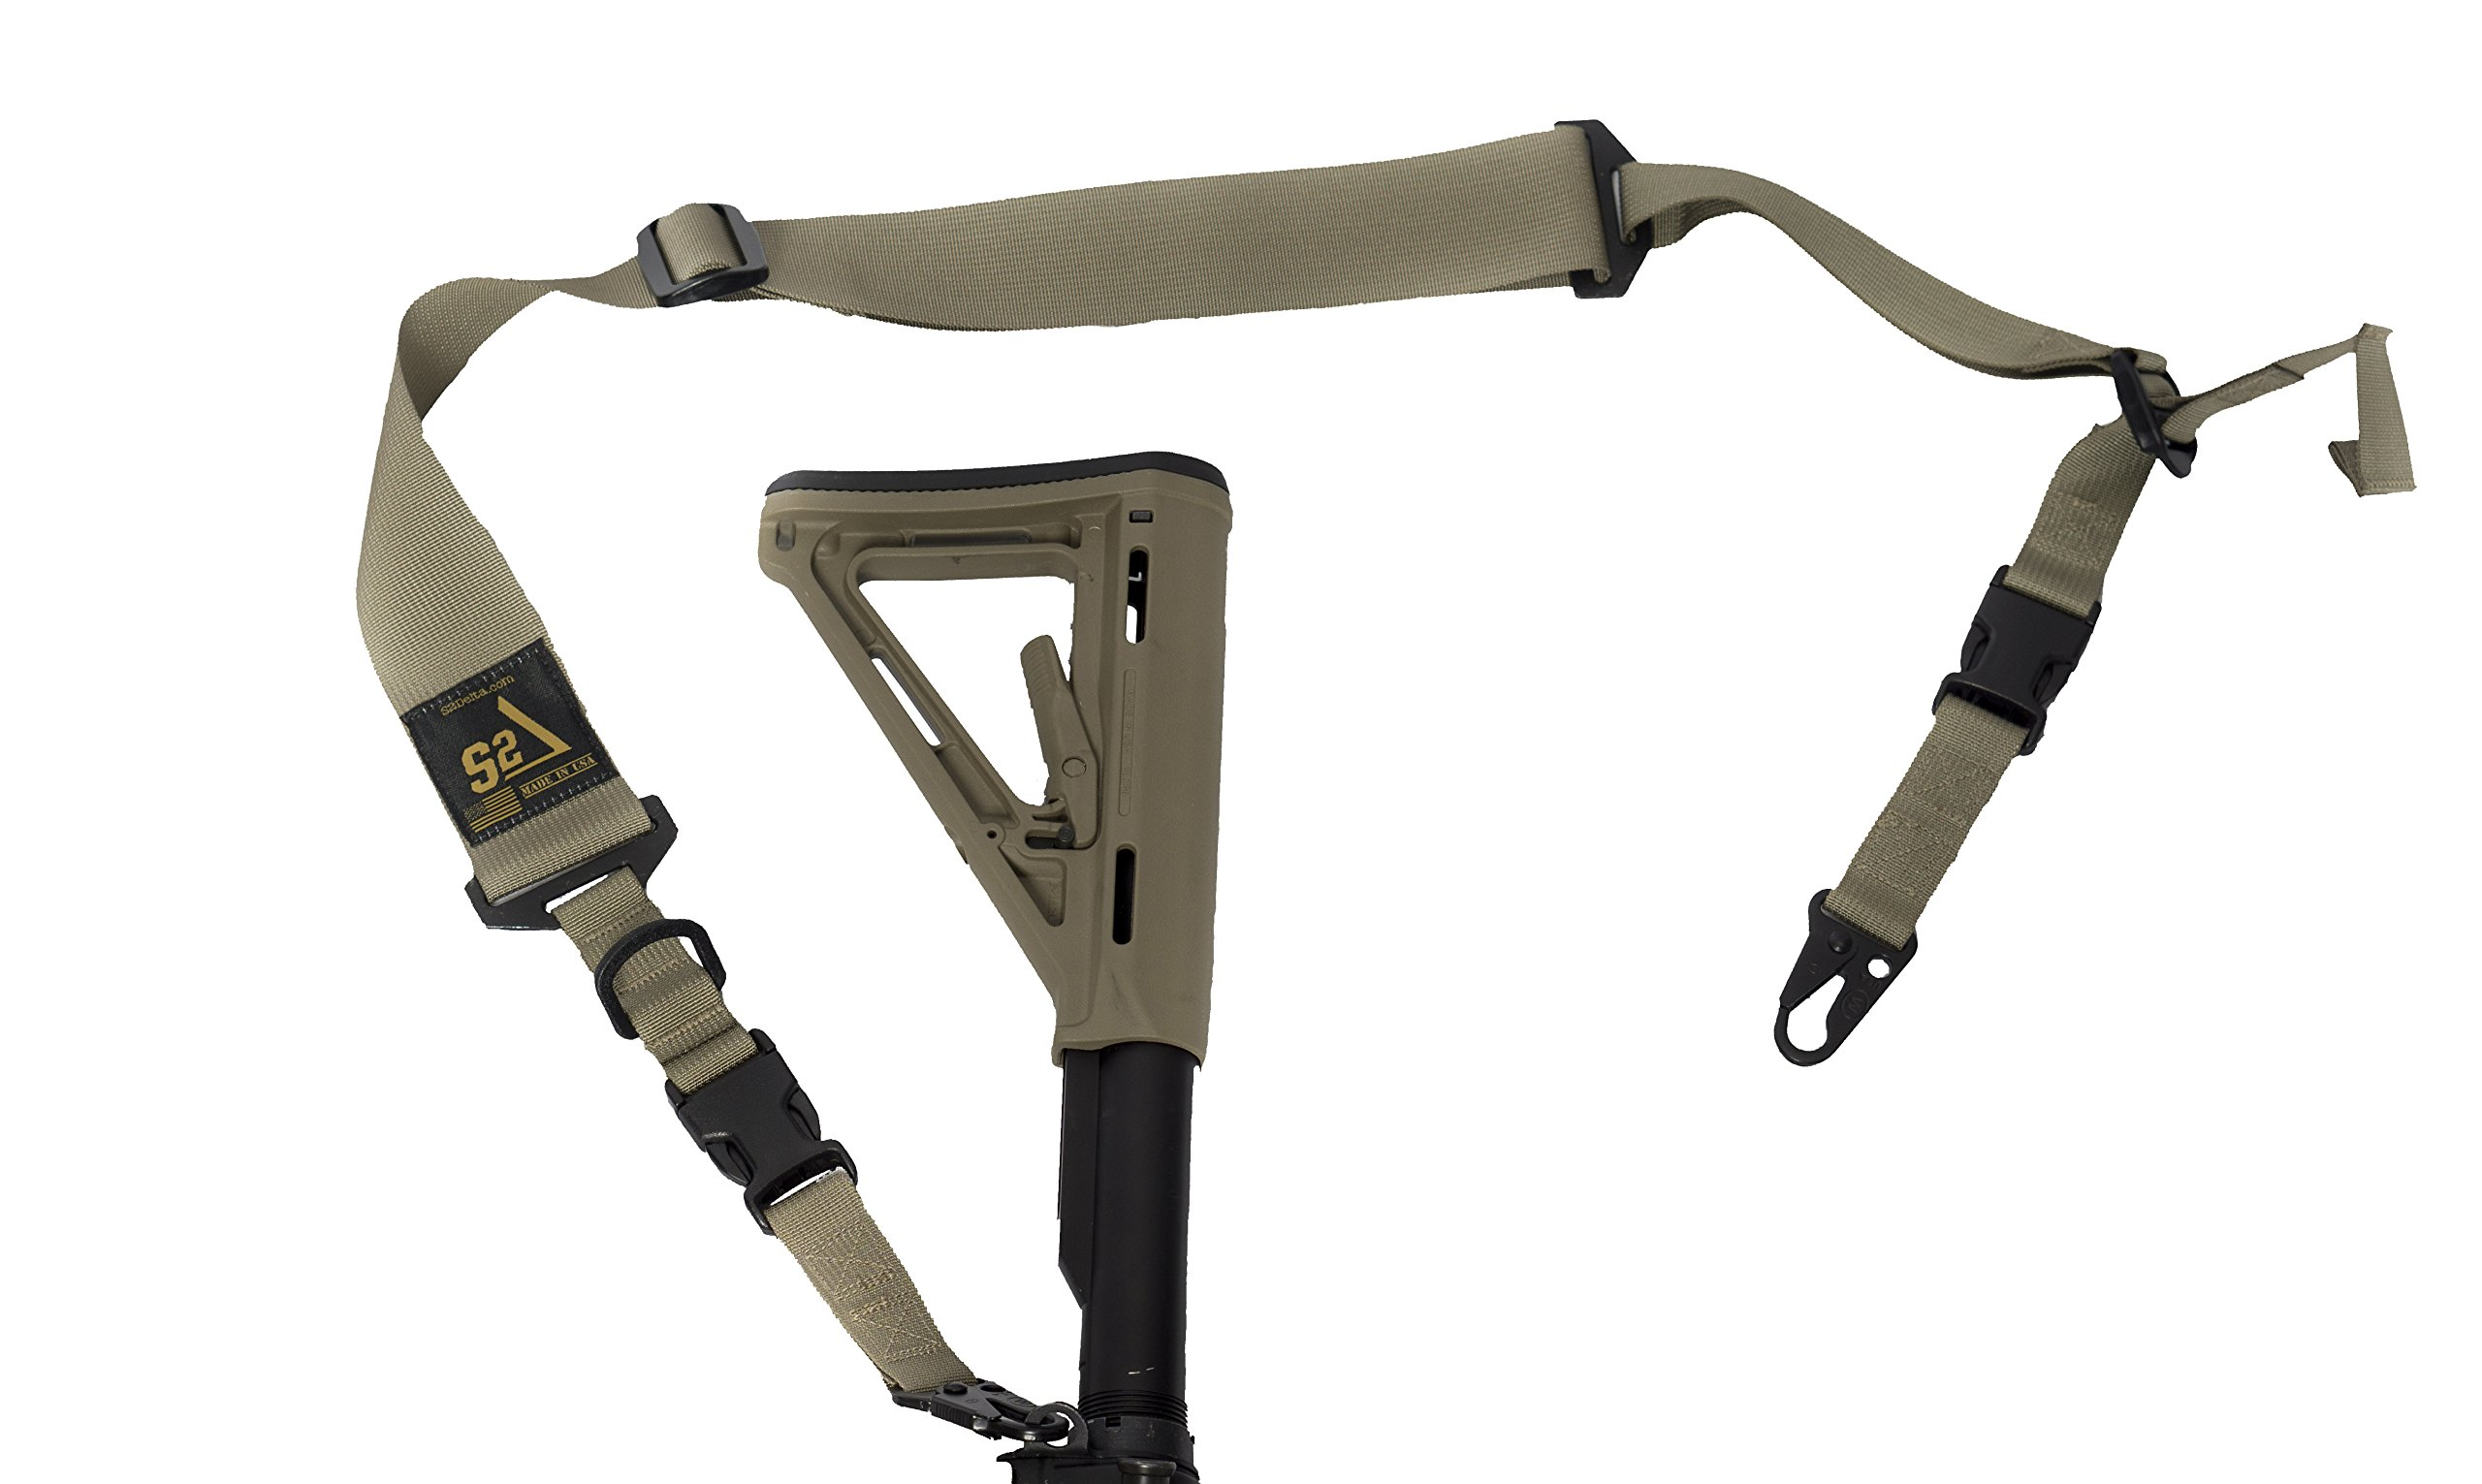 S2Delta - USA Made 2 Point Rifle Sling, Quick Adjustment, Modular Attachment Connections, Comfortable 2'' Wide Shoulder Strap to 1'' Attachment Ends (Tan with C.L.A.S.H. Hooks) (MRS2P-USA-TCH) by S2Delta